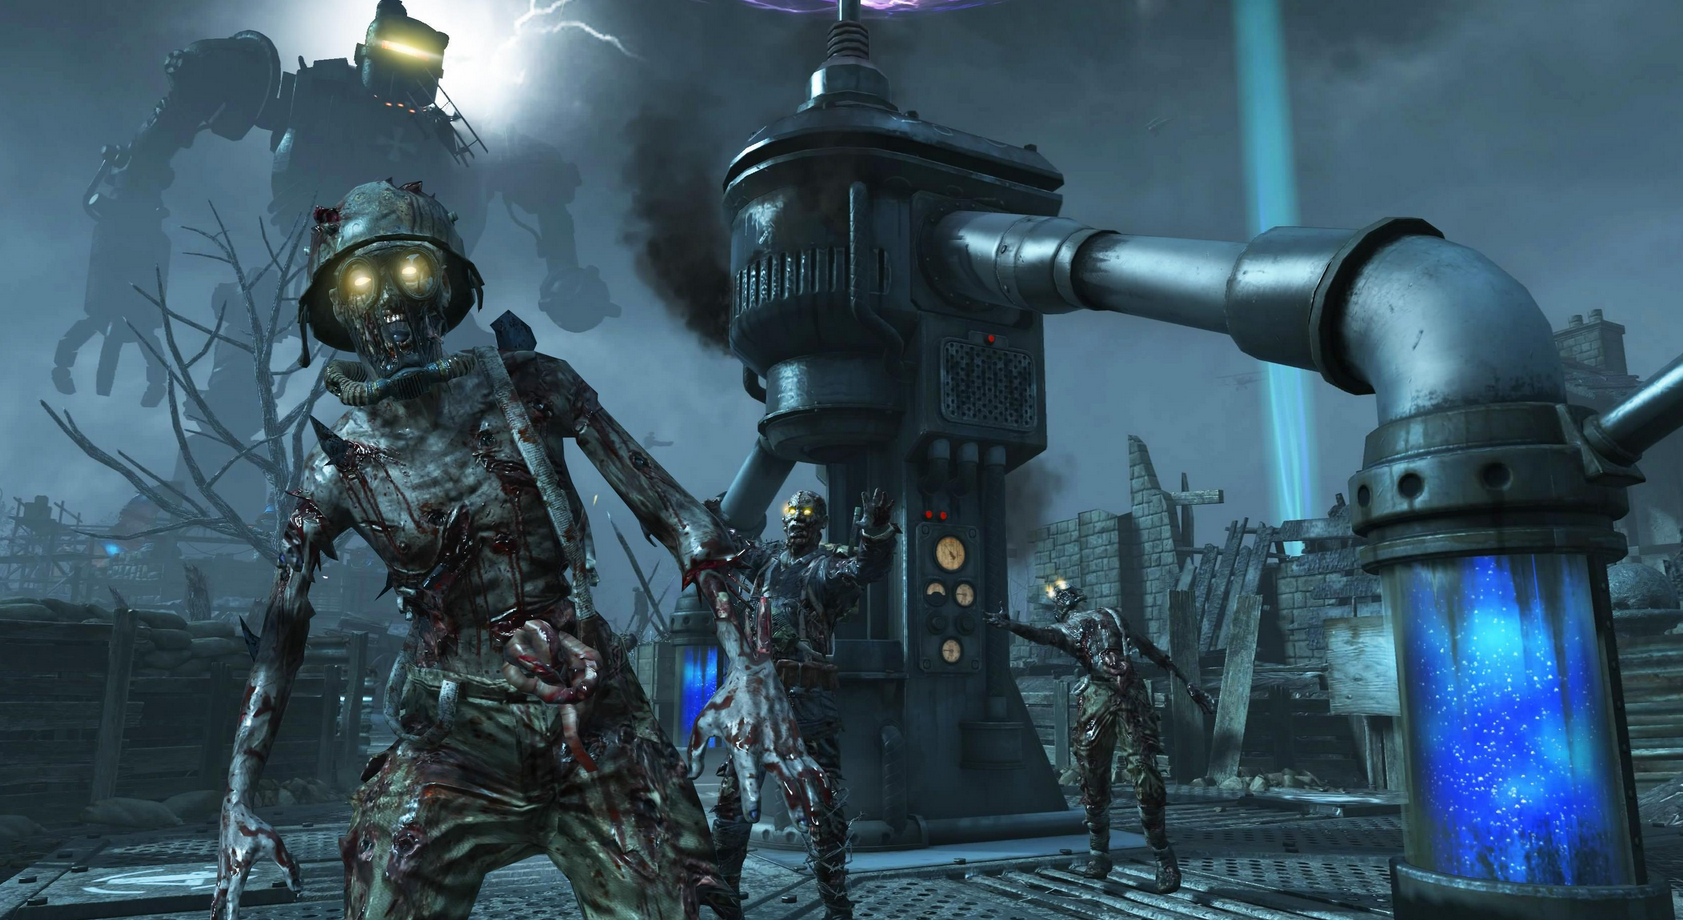 Call of Duty: Black Ops 3 Zombie Chronicles Kino der Toten